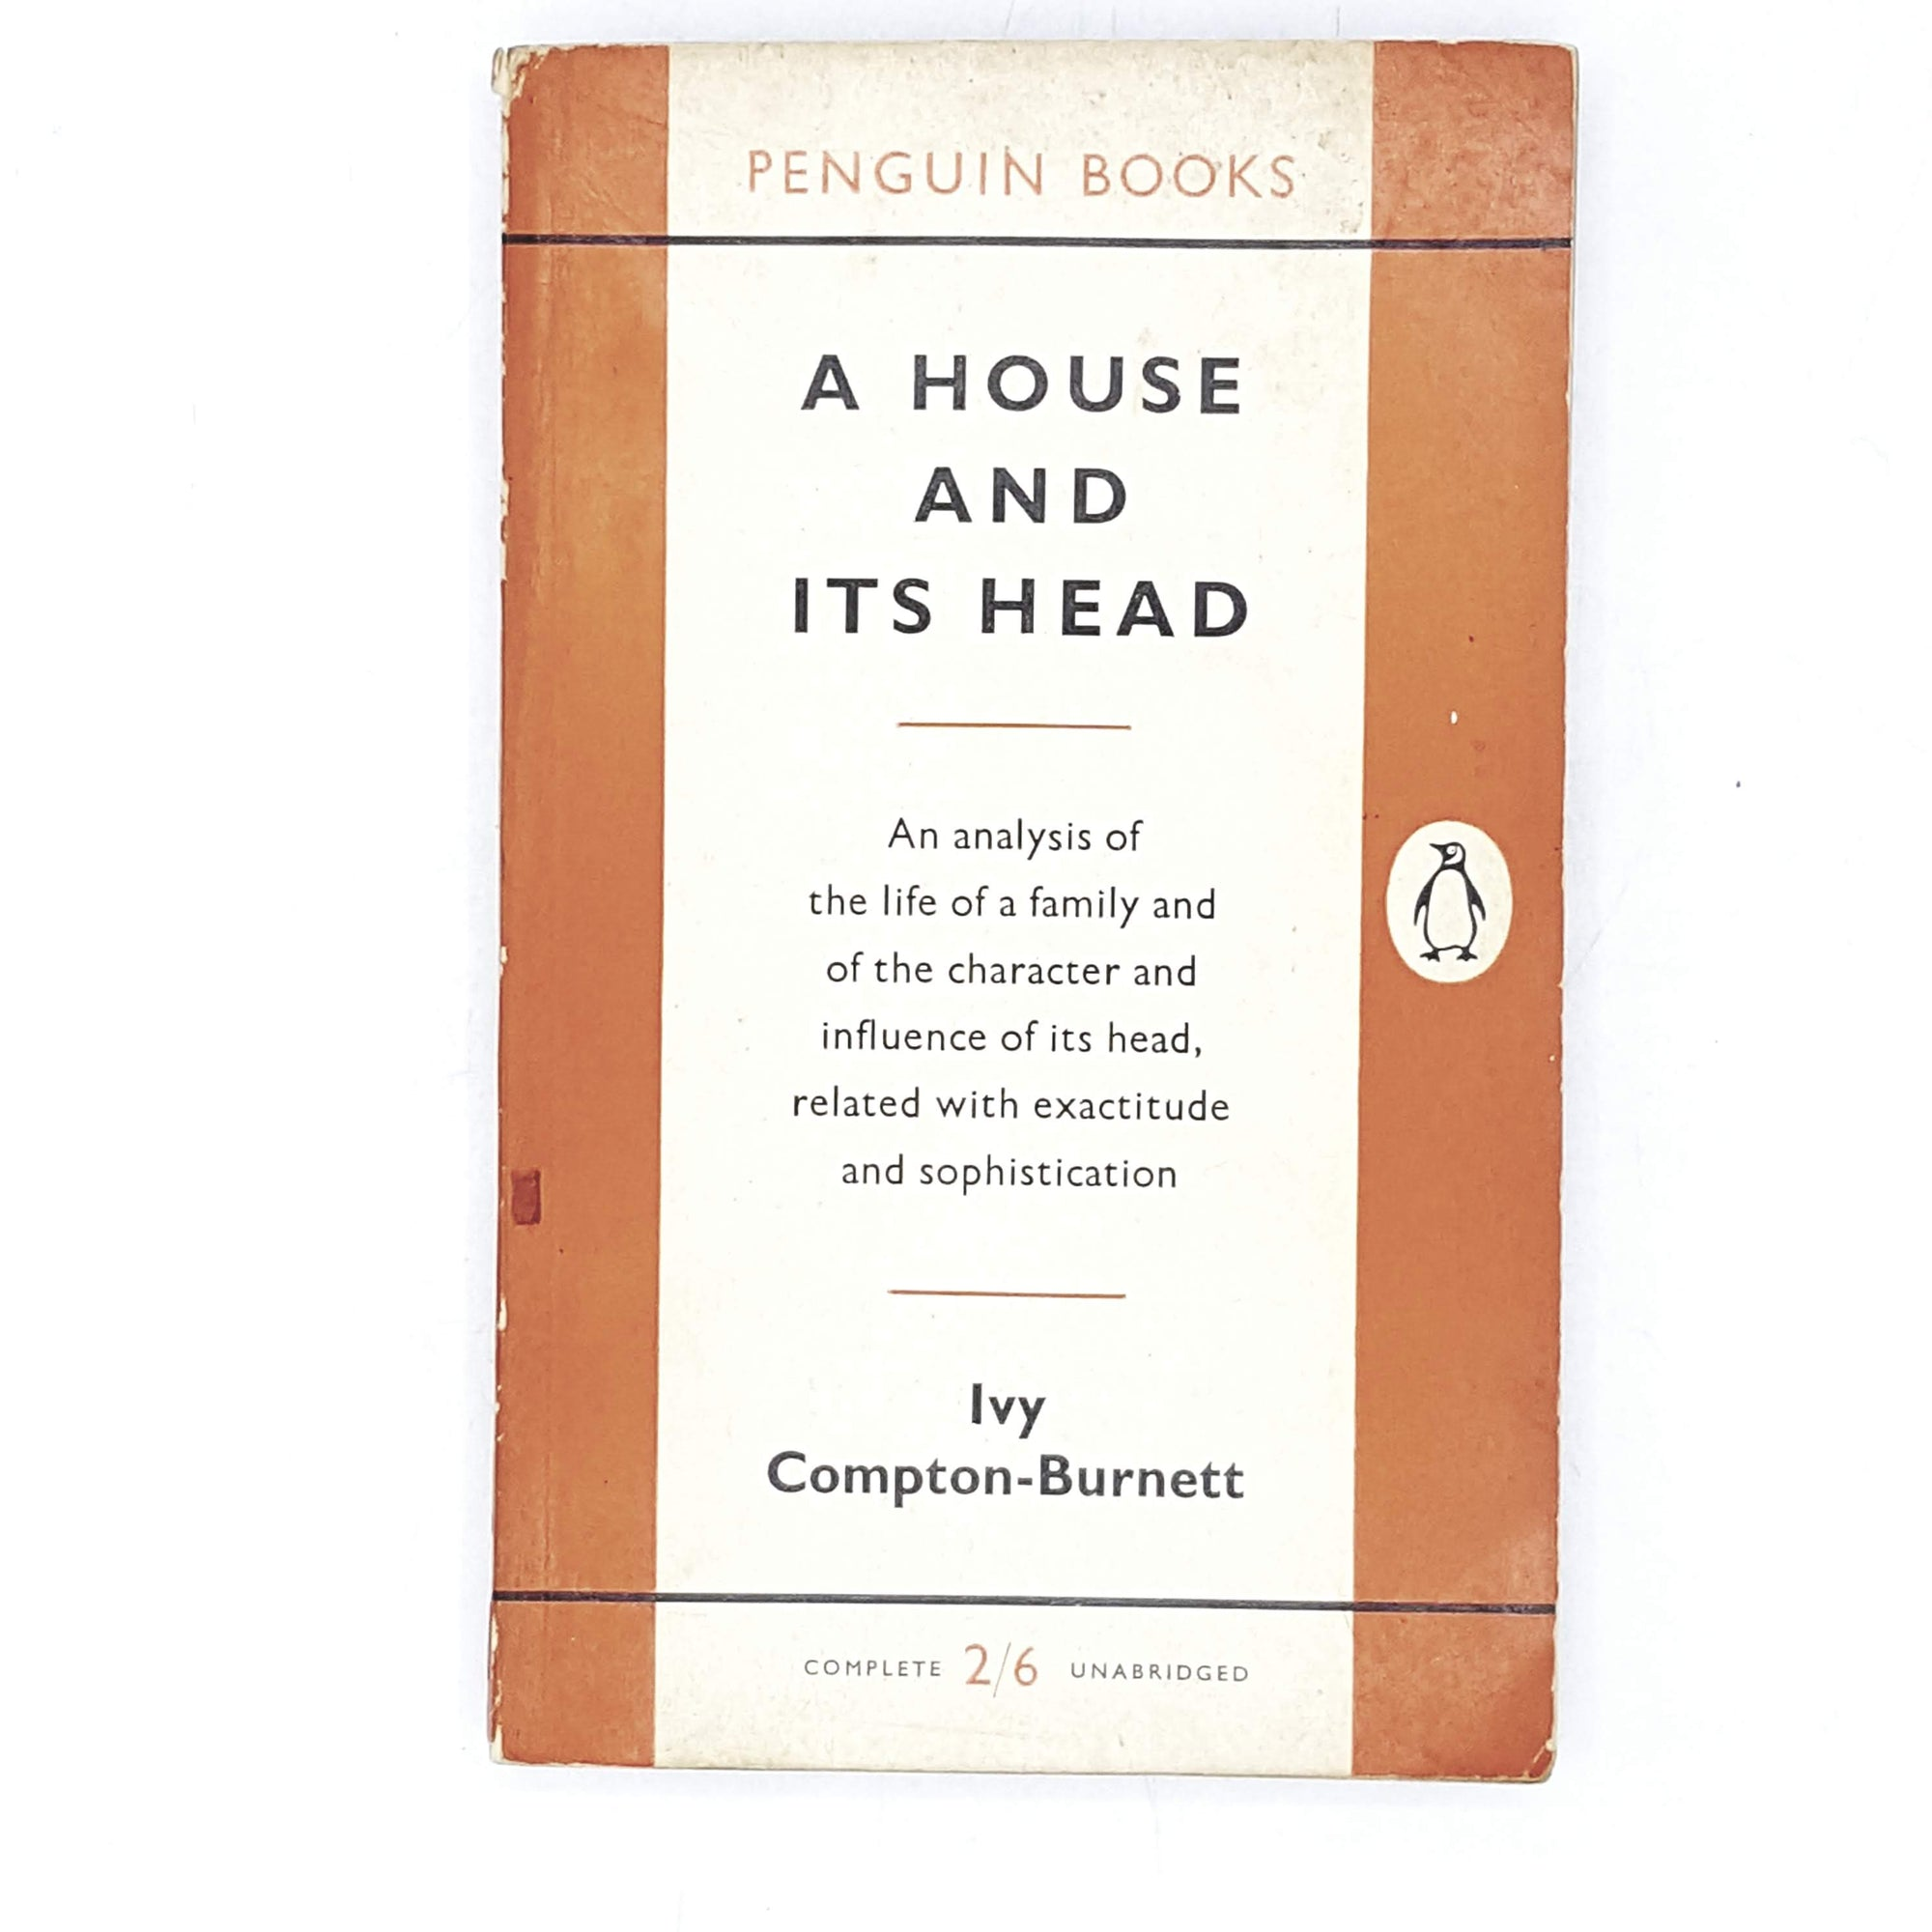 Vintage Penguin A House and Its Head by Ivy Compton-Brunett 1958